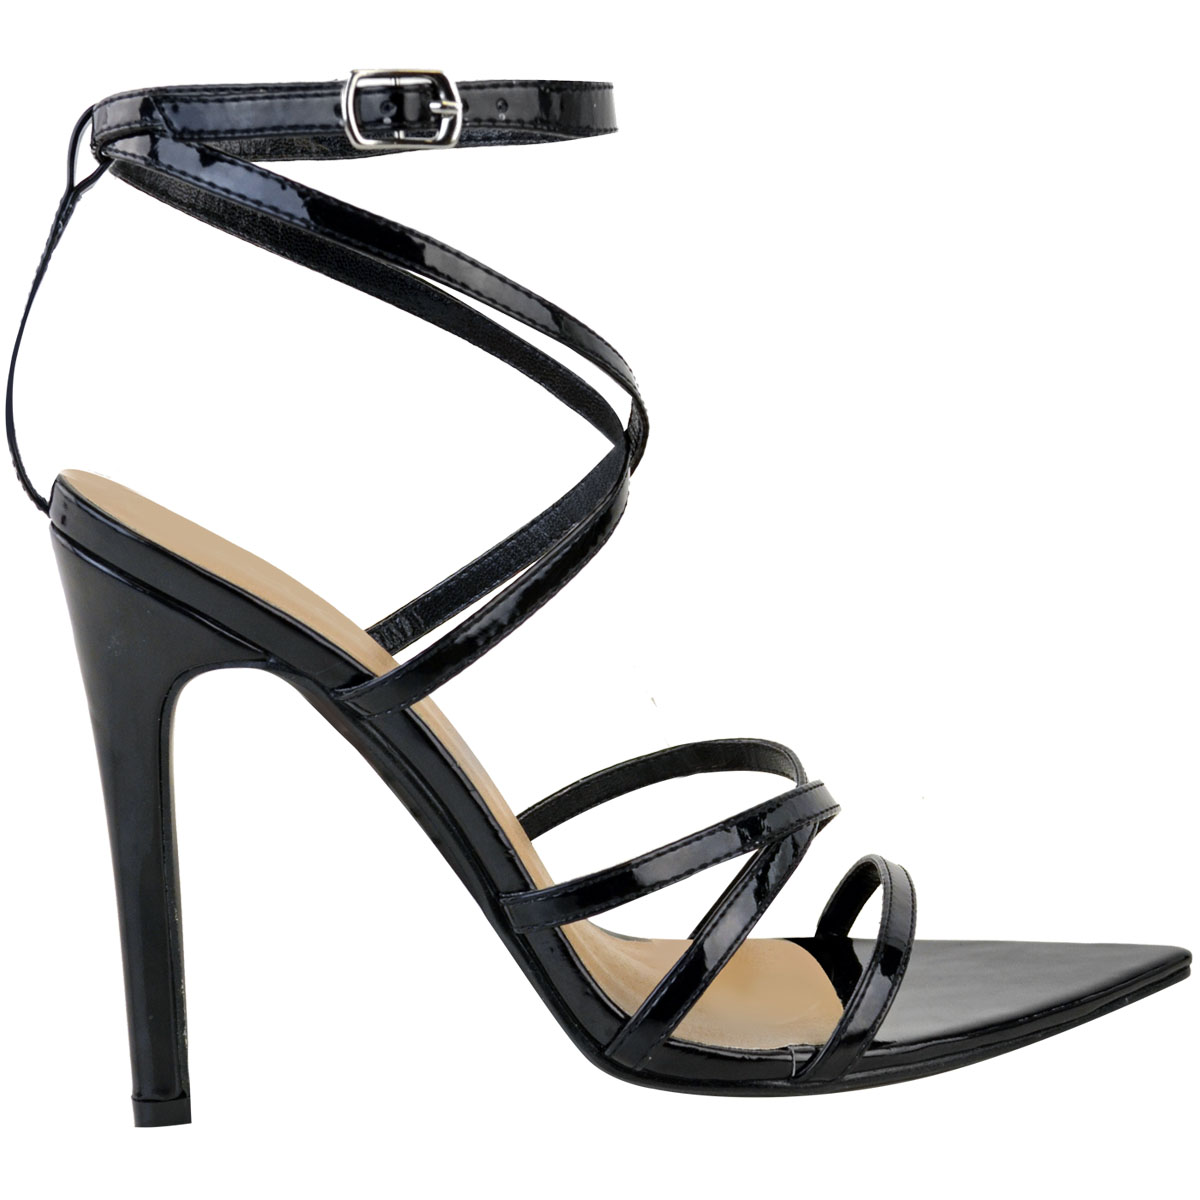 Womens-Ladies-Pointed-Barely-There-High-Heels-Sandals-Strappy-Black-Patent-Size thumbnail 4